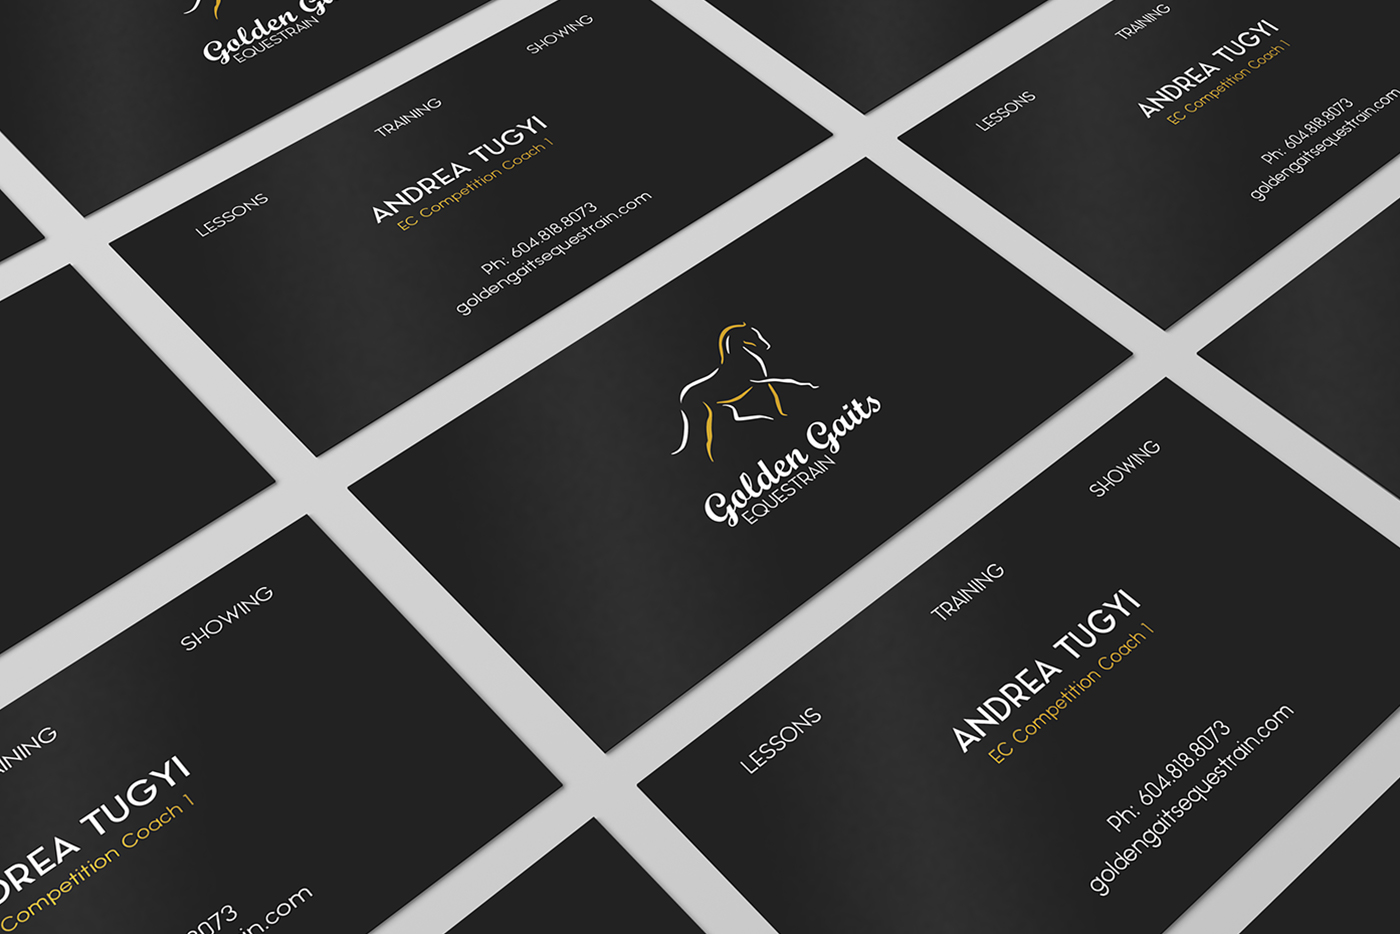 Golden Gaits Equestrain business card design | Monika Szucs